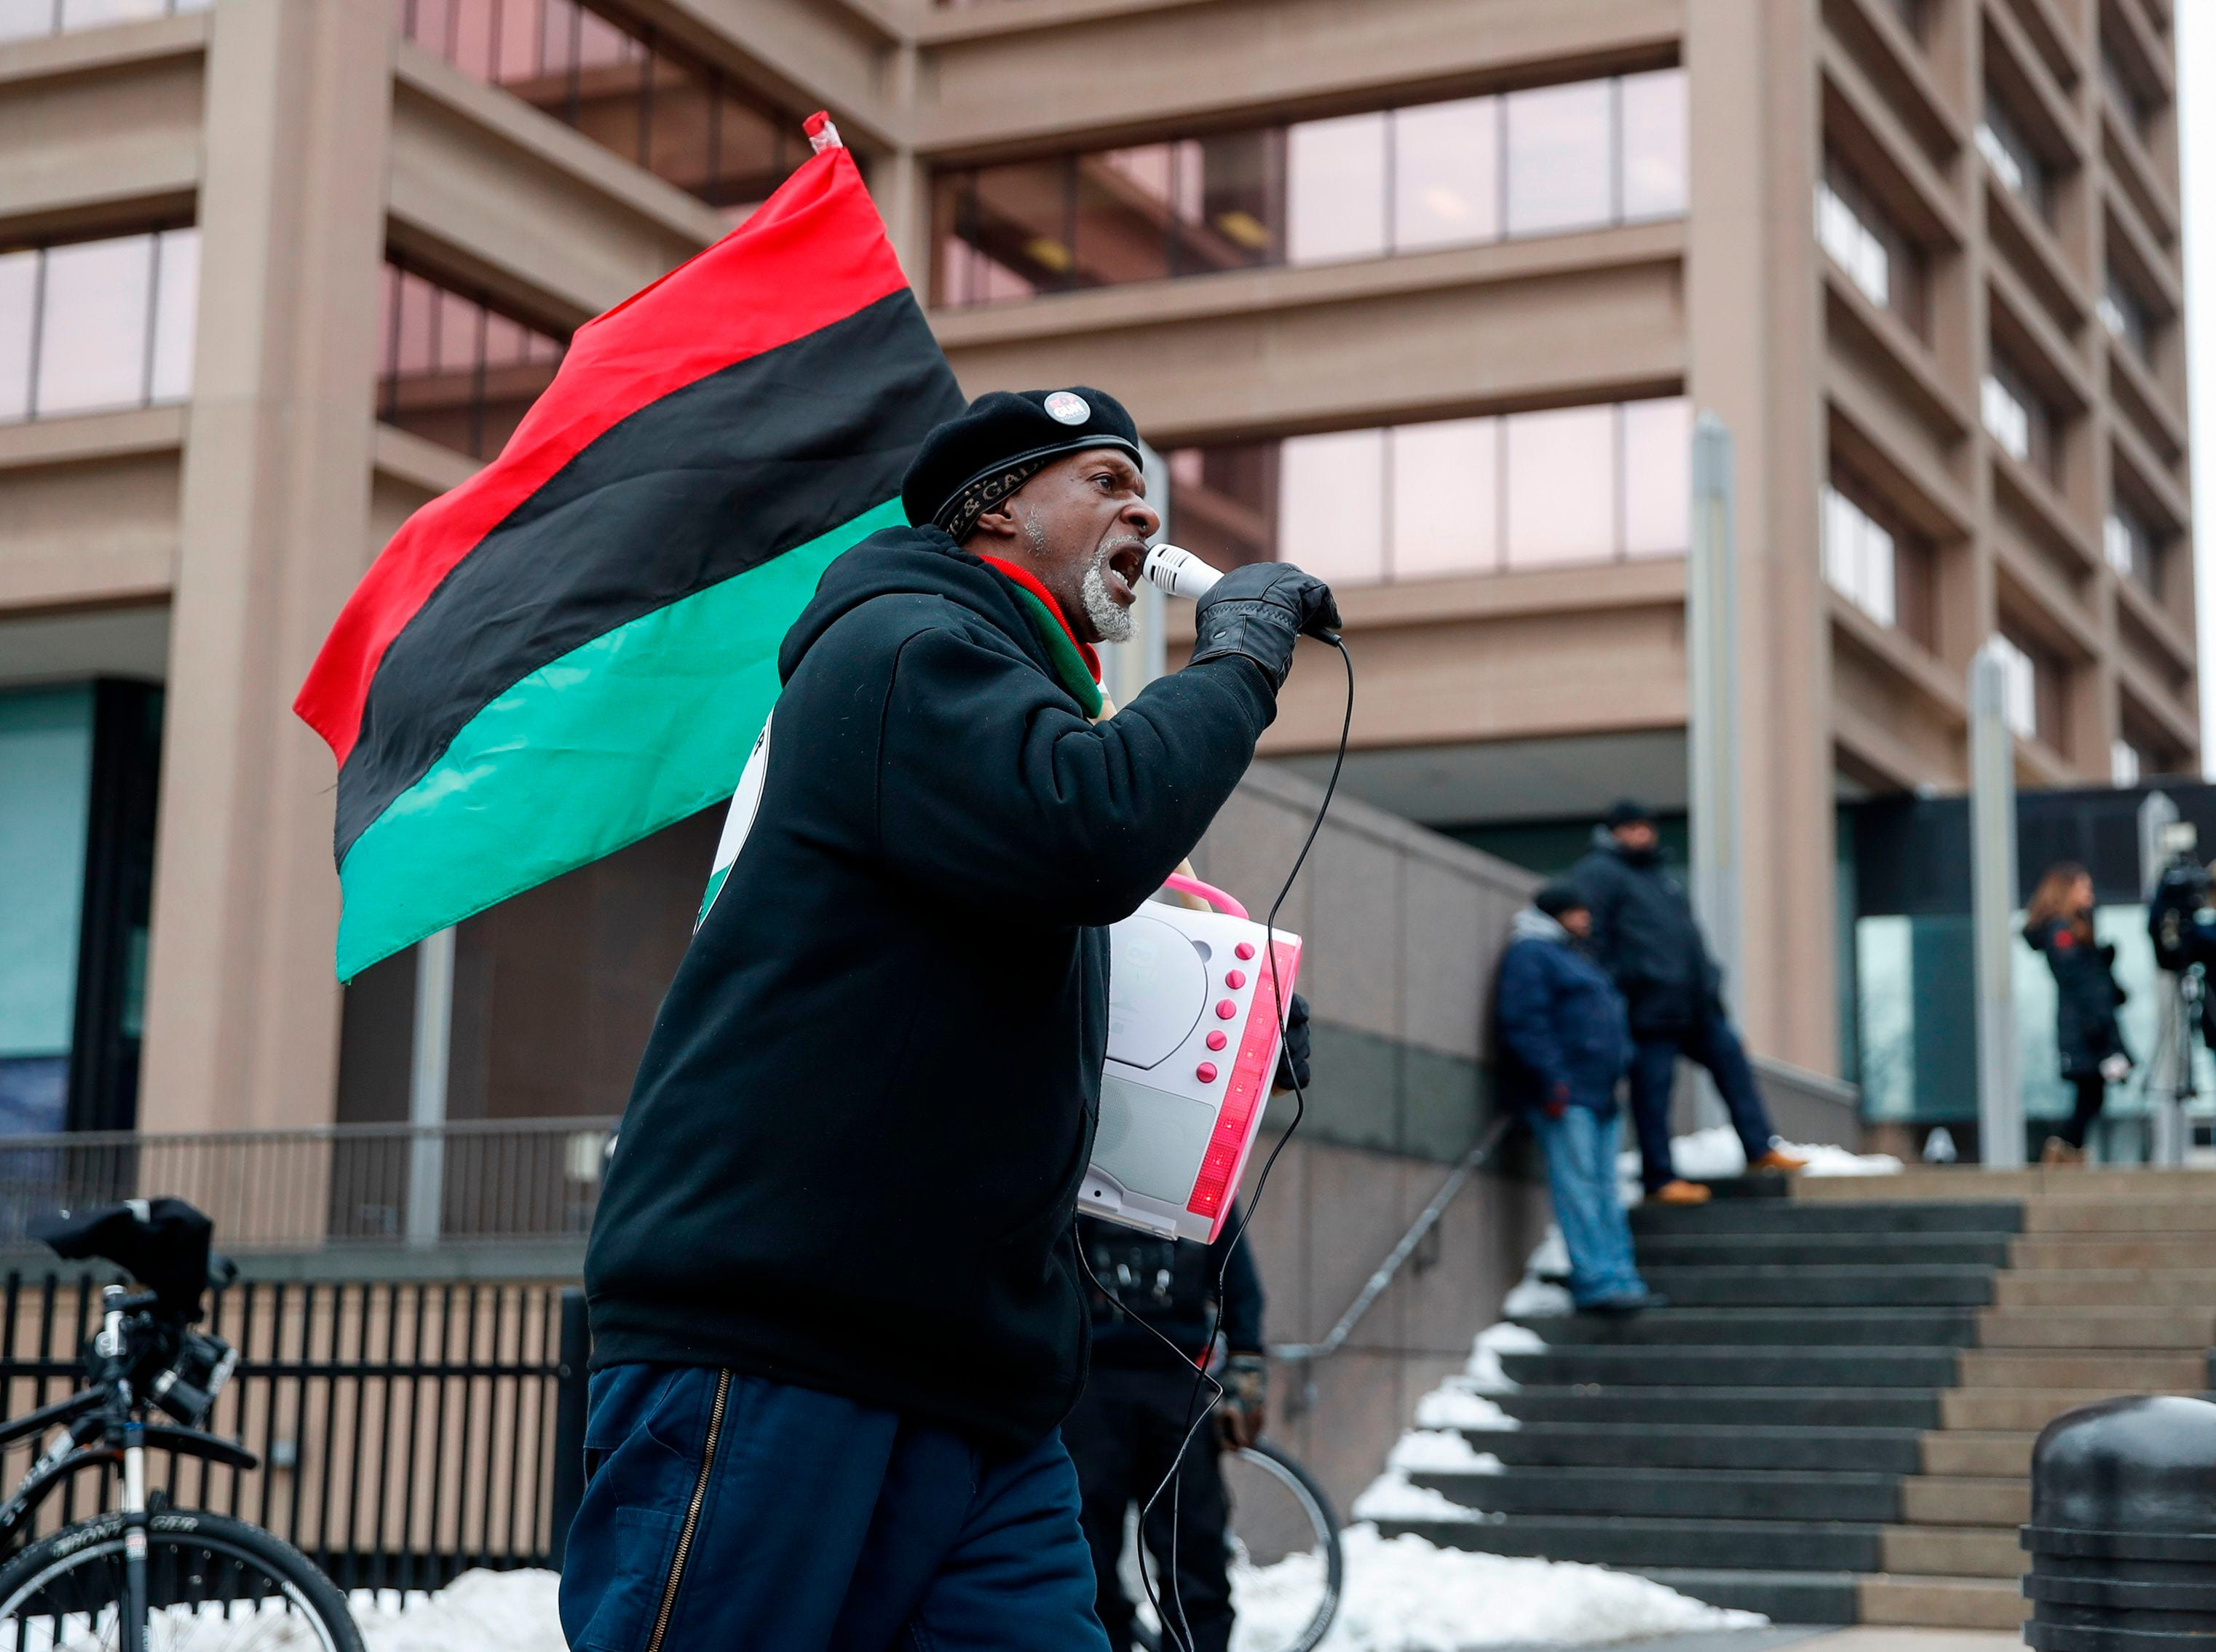 A man, with a Pan-African flag, protests outside of the Leighton Criminal Courts Building during the sentencing of Officer Jason Van Dyke on Jan. 18, 2019 in Chicago, Illinois.